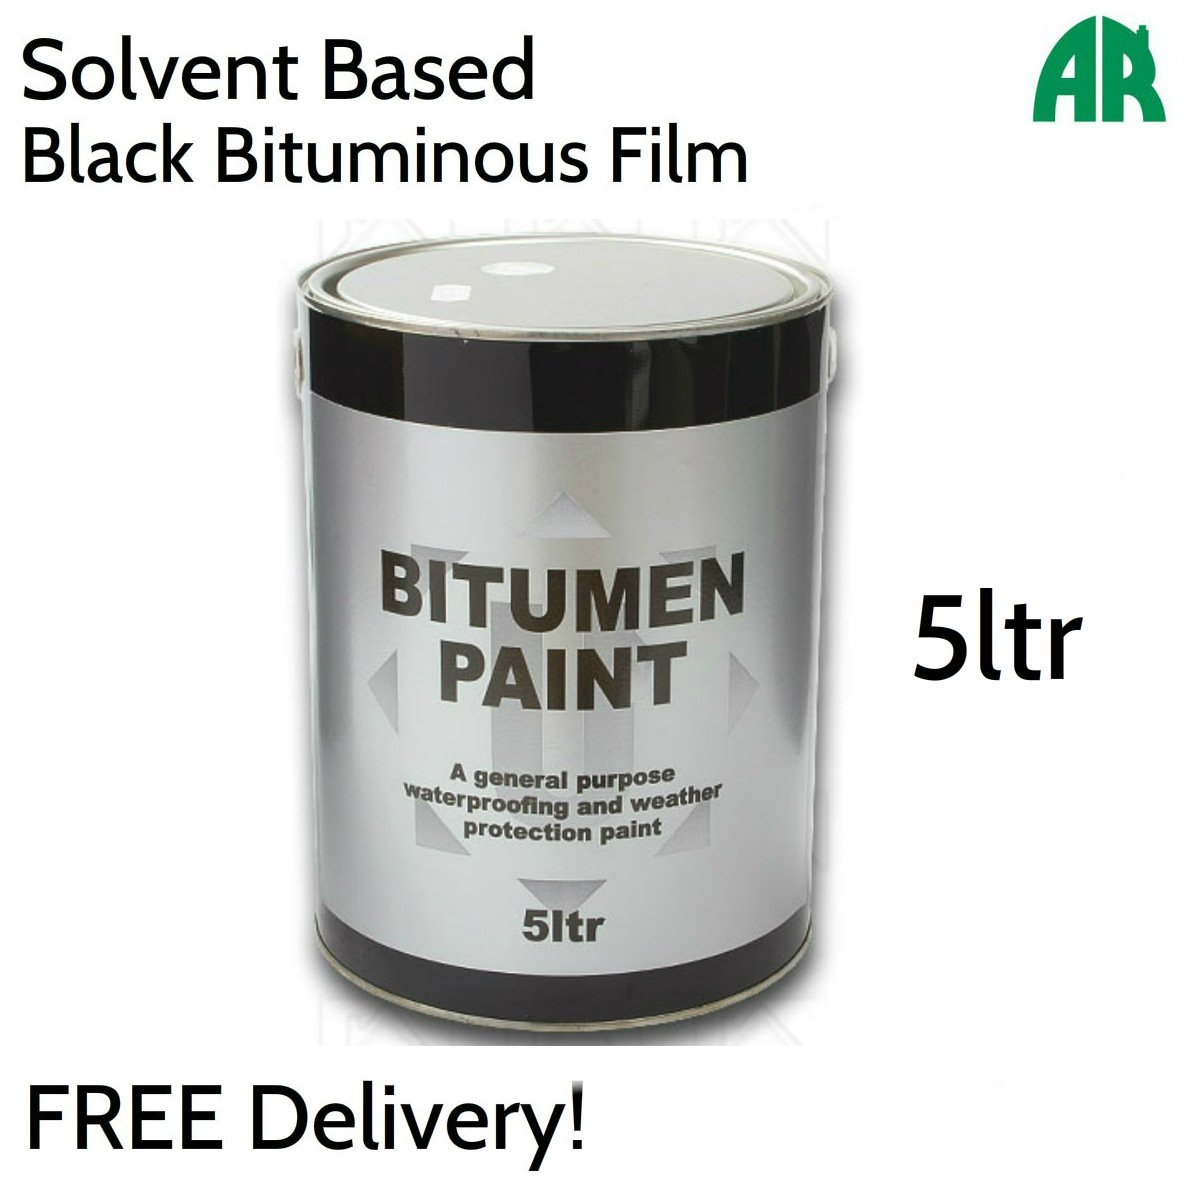 Black Bitumen Paint | Waterproof | Weatherproof | Protective Coating | 5ltr Ashbrook Roofing